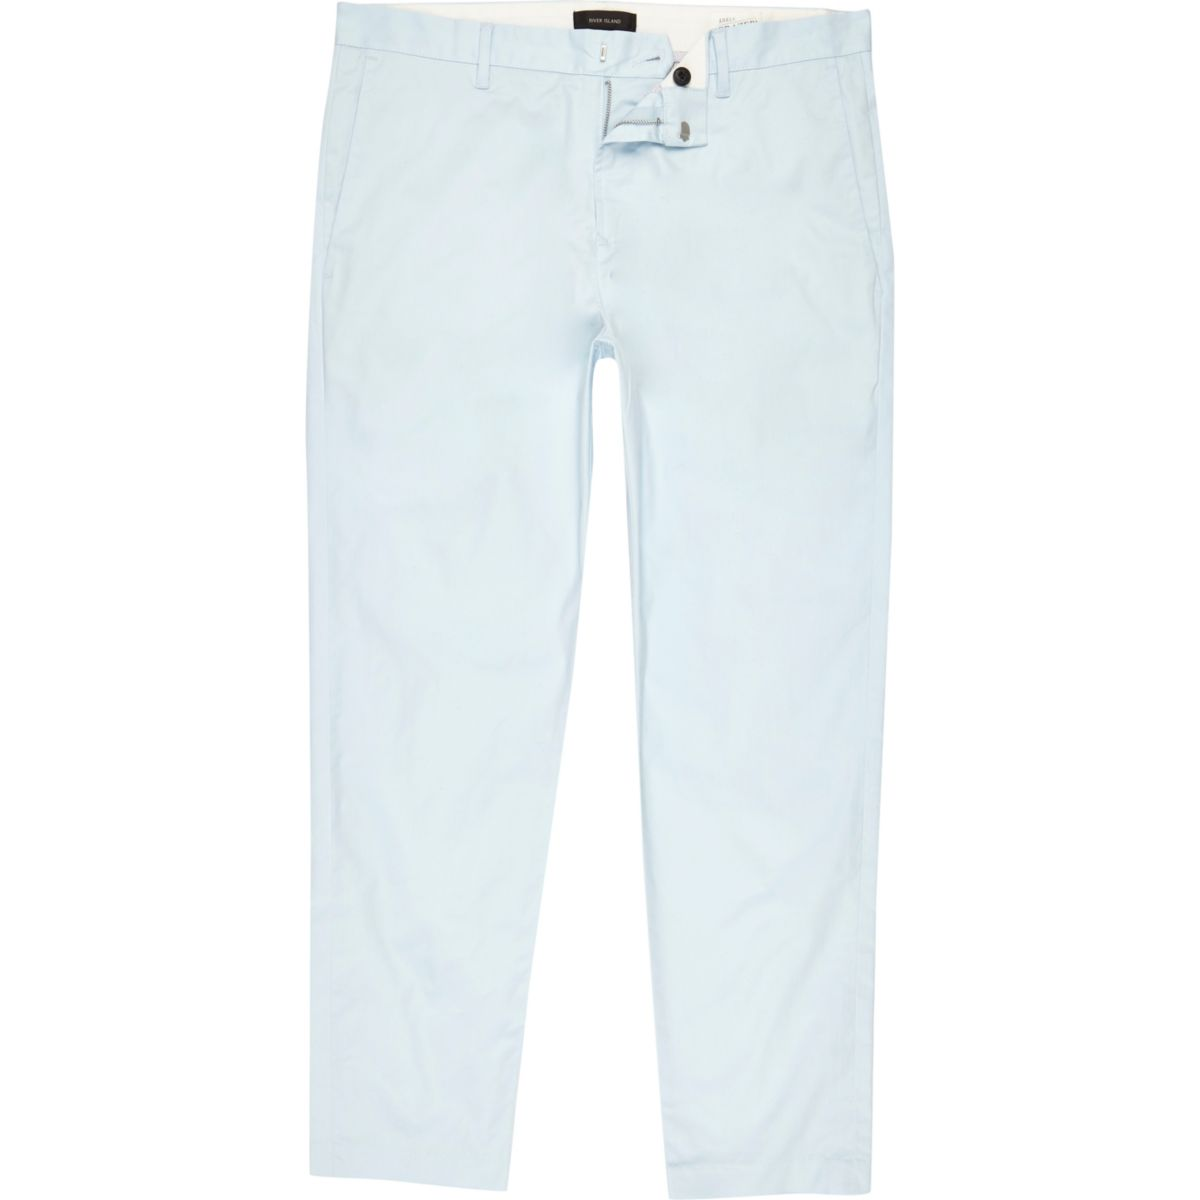 Light blue slim ankle grazer chino pants